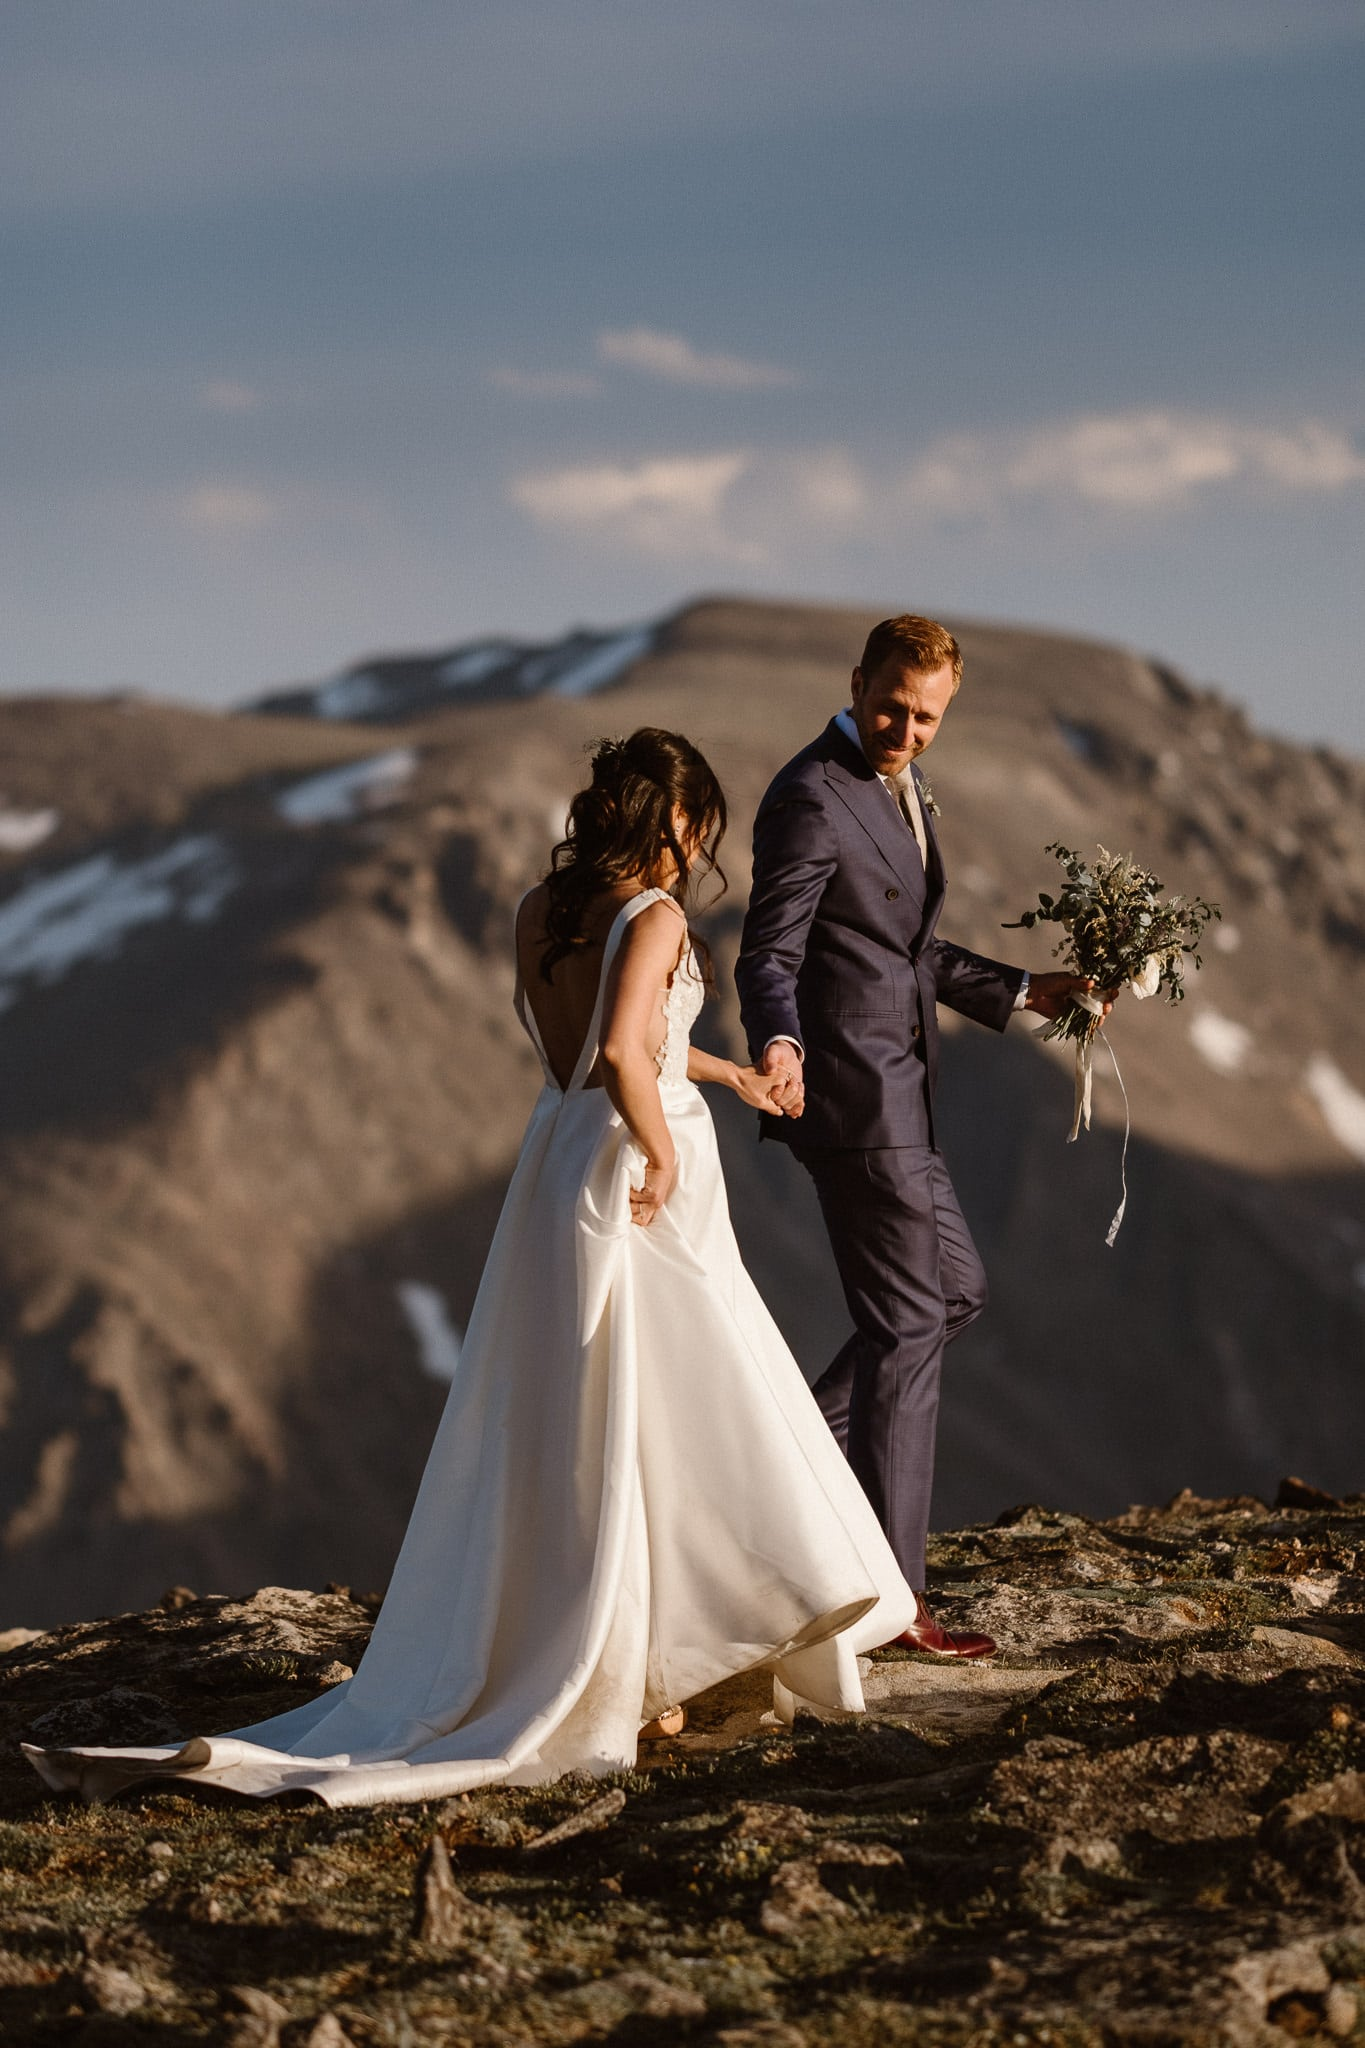 Trail Ridge Road Elopement Photographer, Colorado adventure wedding photography